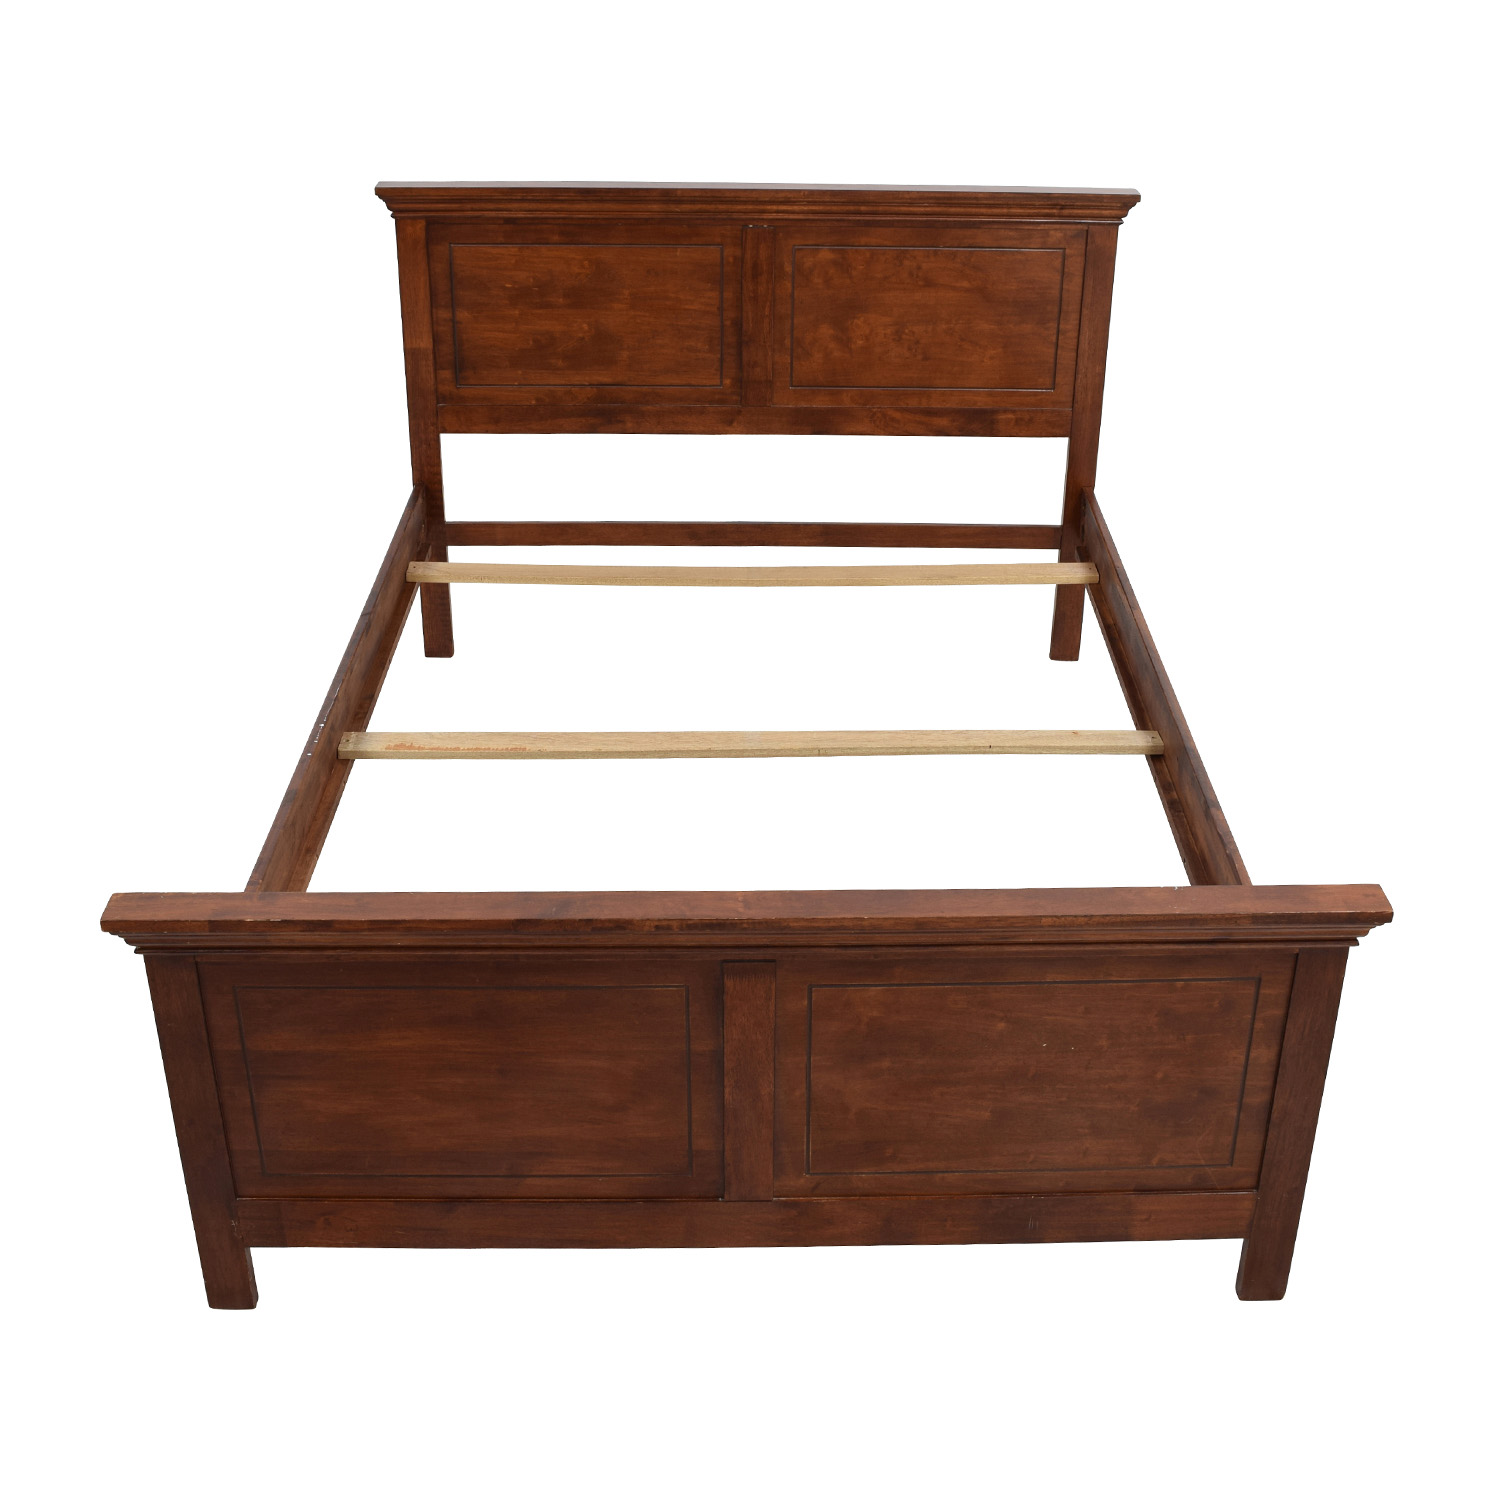 queen wooden bed frame second hand - Wood Bed Frames Queen